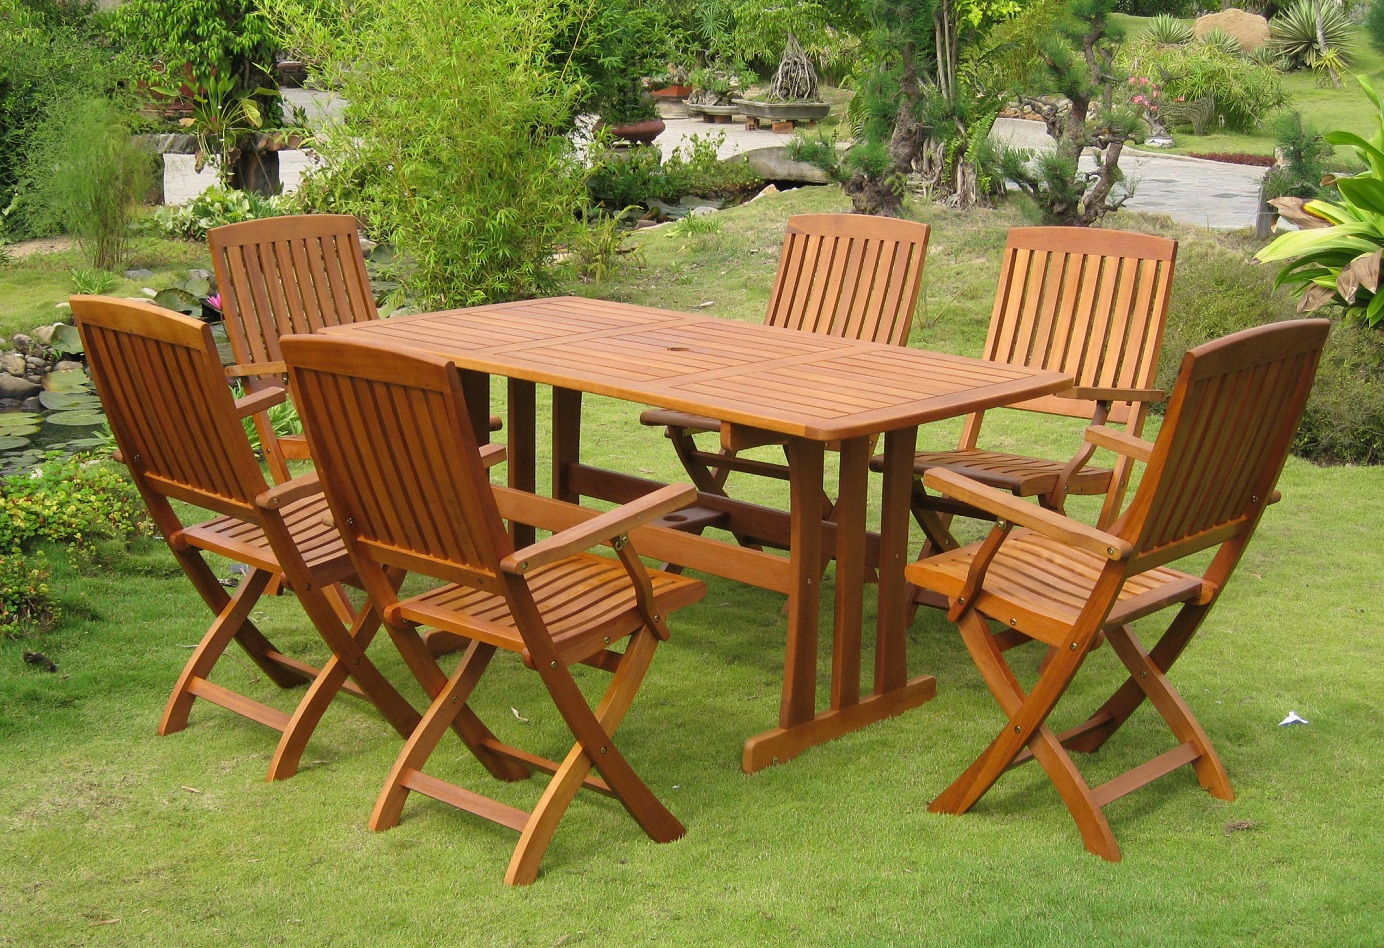 Wooden Garden Furniture wooden garden furniture JSGLAHI